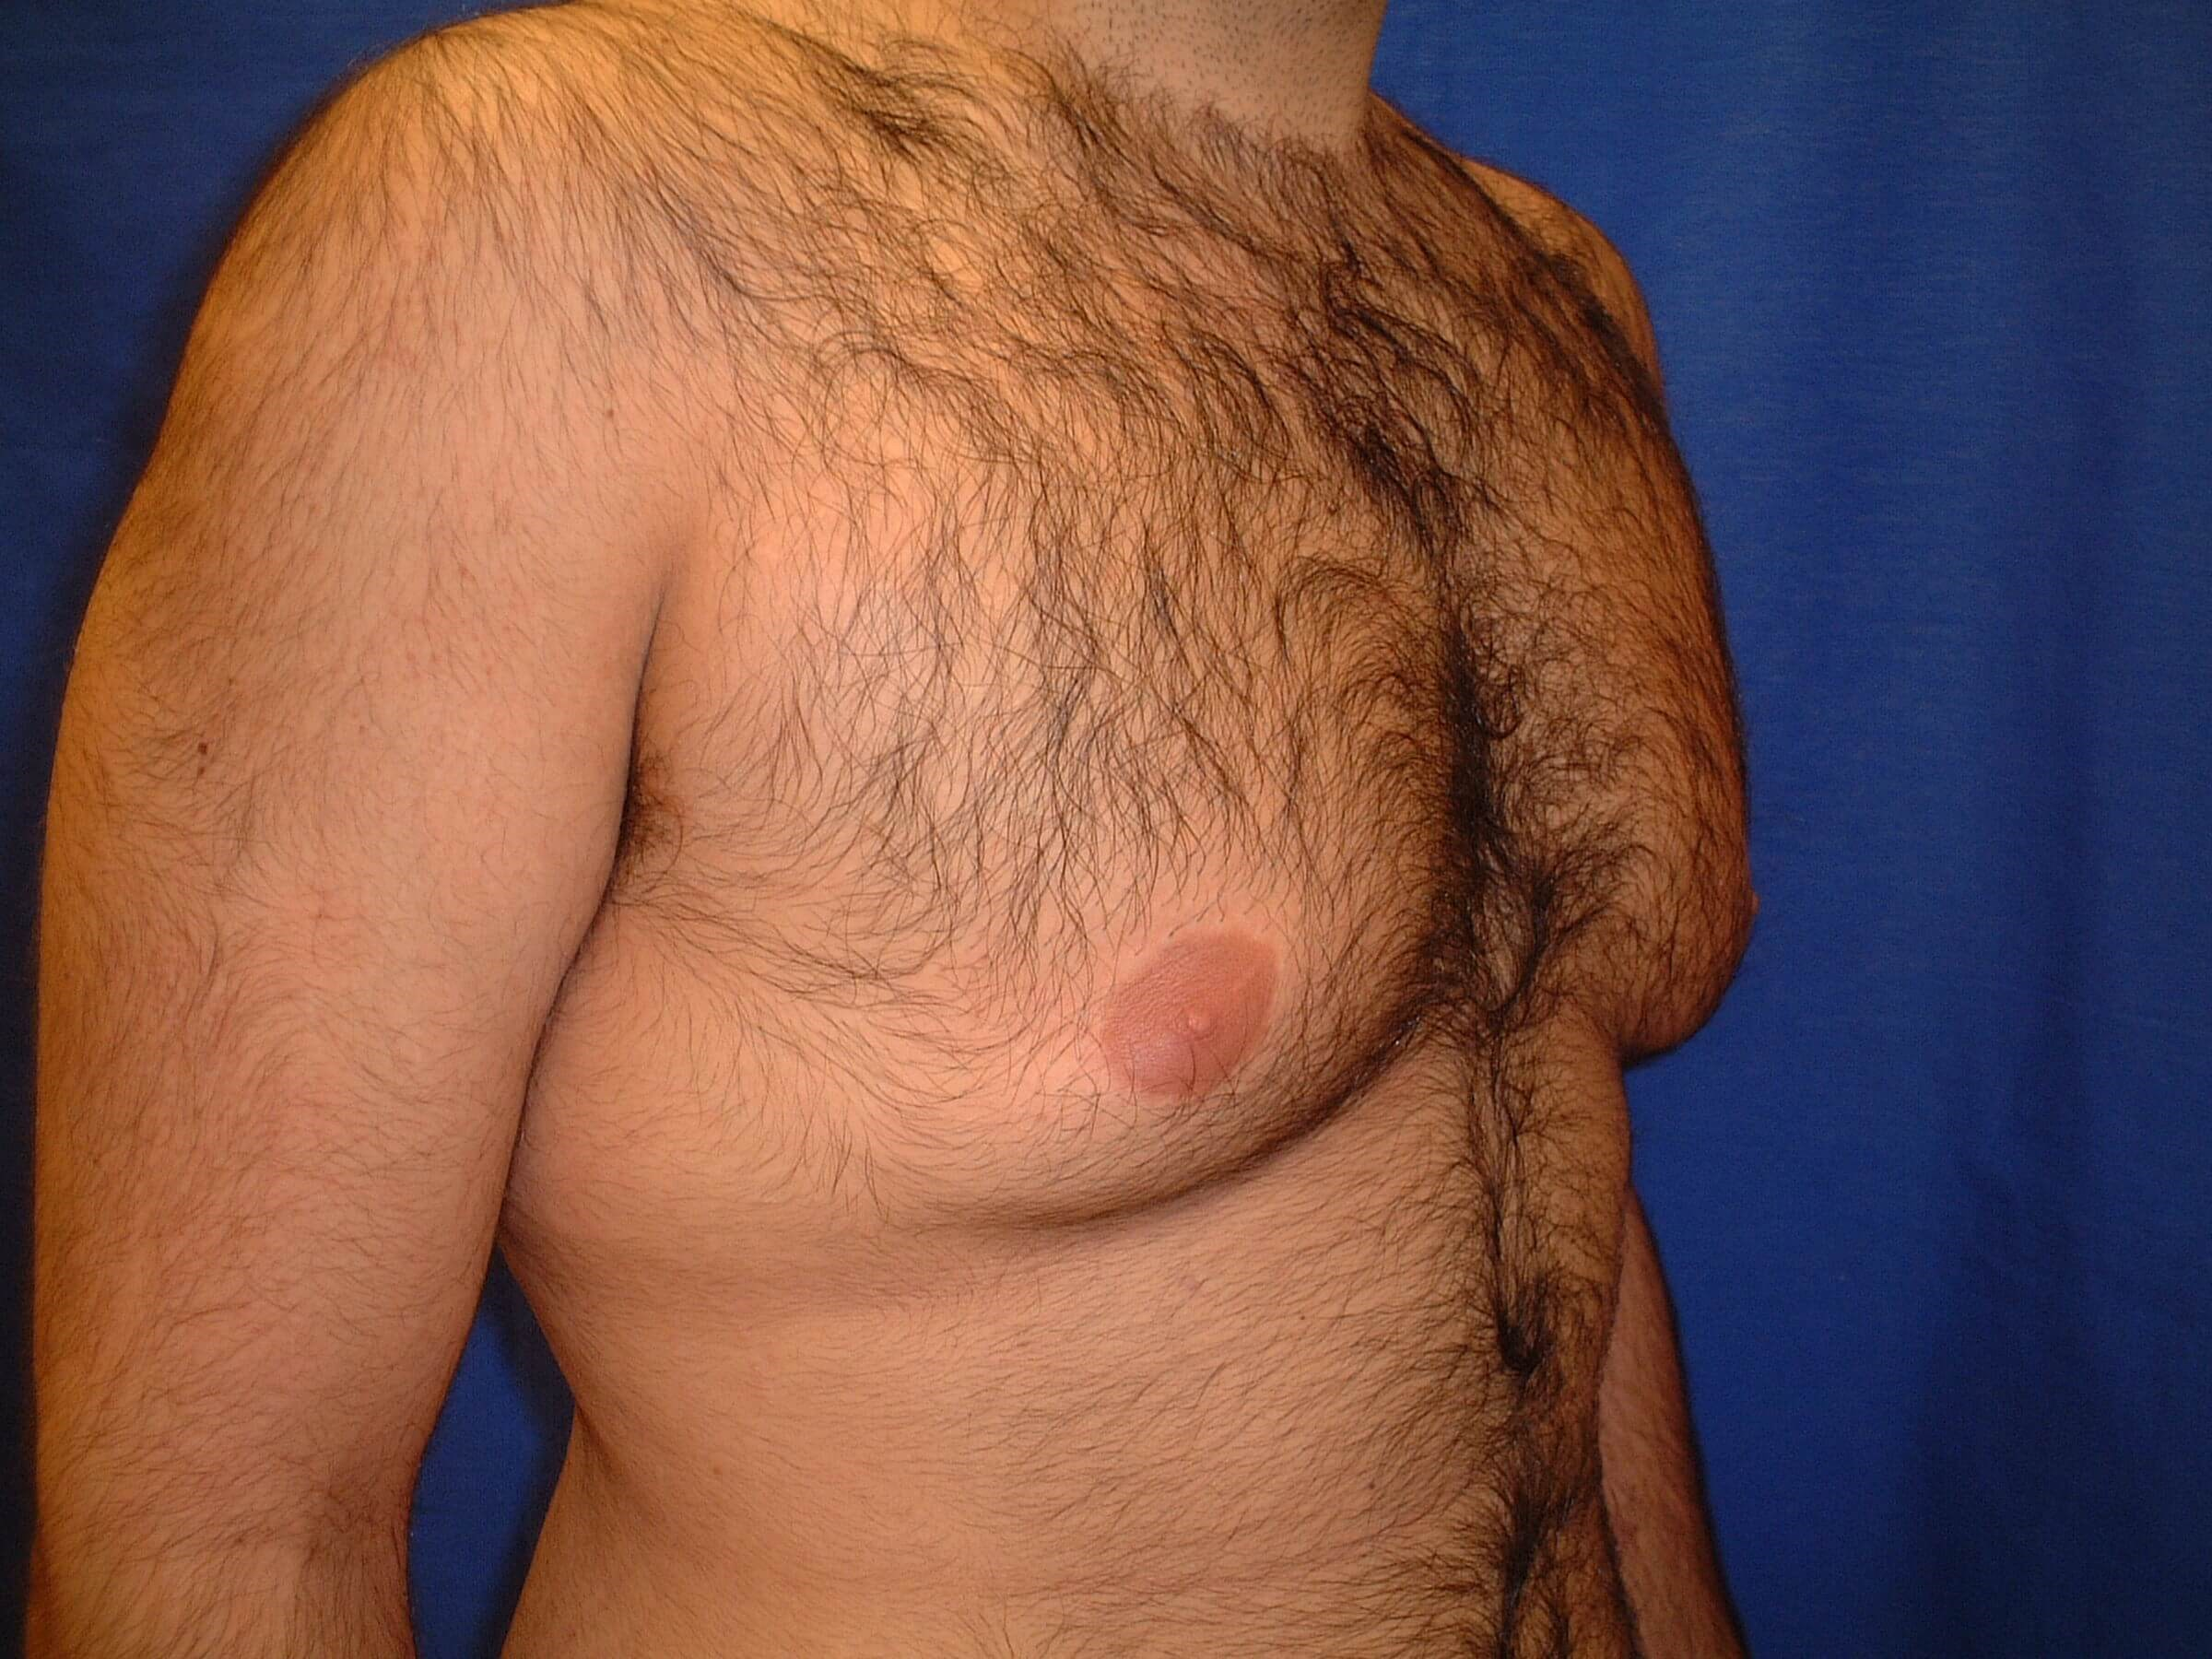 Newport Beach Gynecomastia Oblique View Before